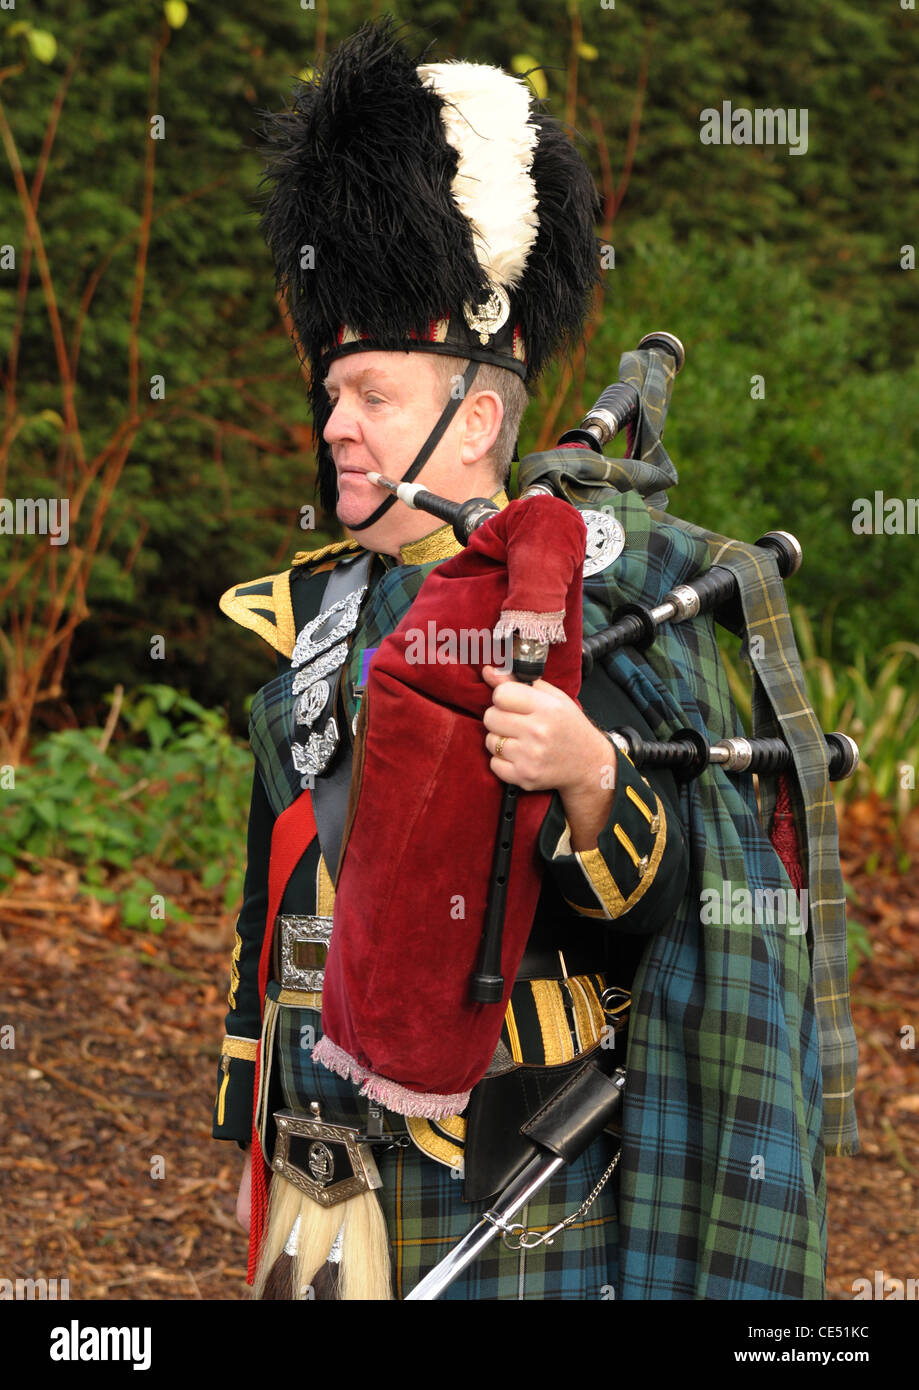 A military piper in full highland dress - Stock Image